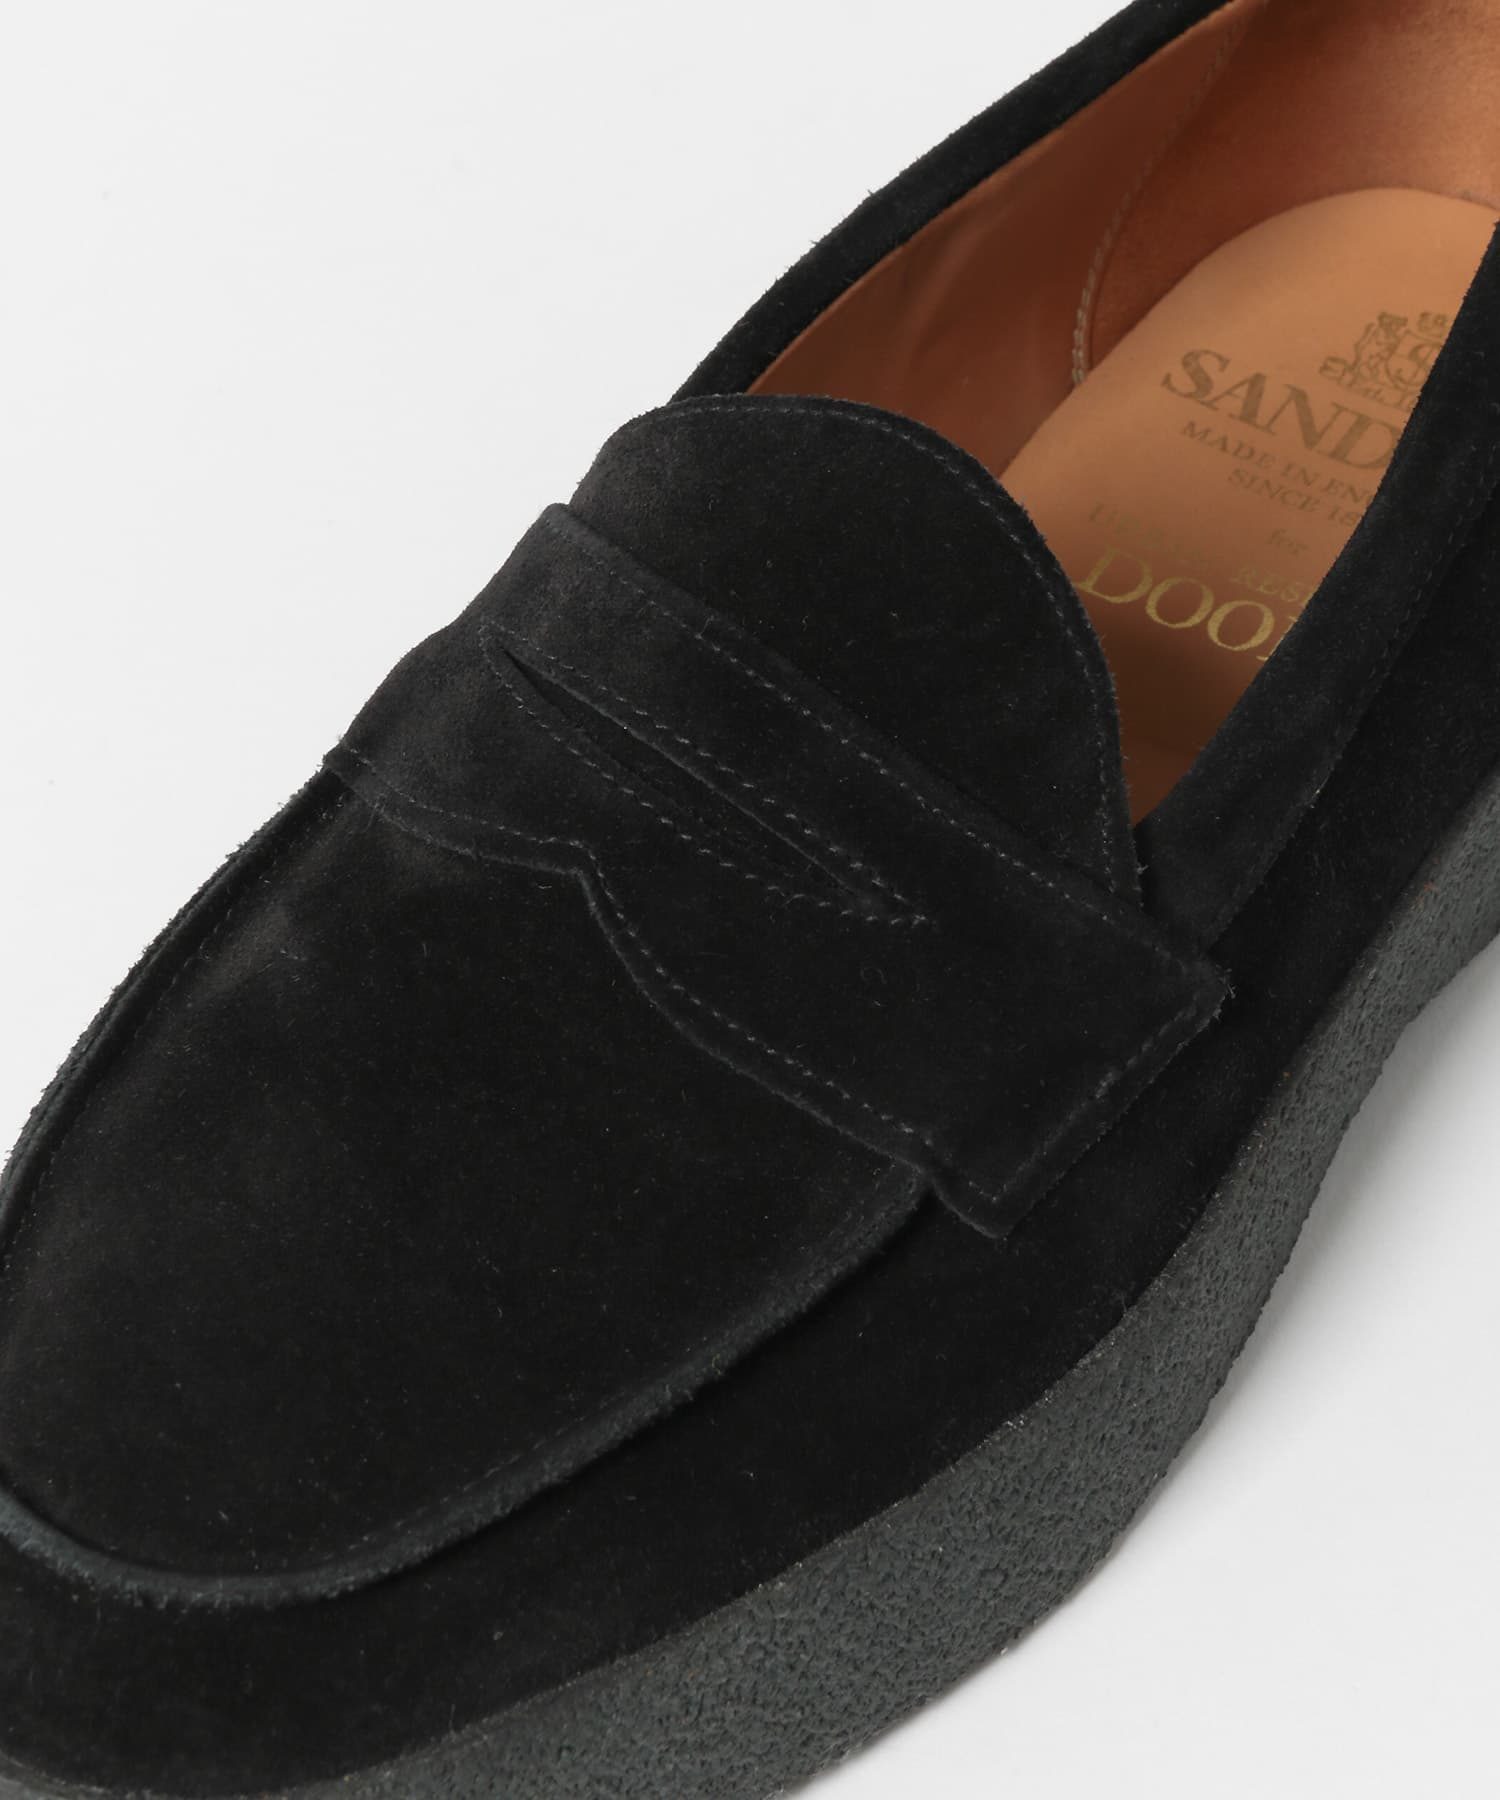 Urban Research Doors Mud Guard Butt Seam Loafer 2109-DM96: Black Suede